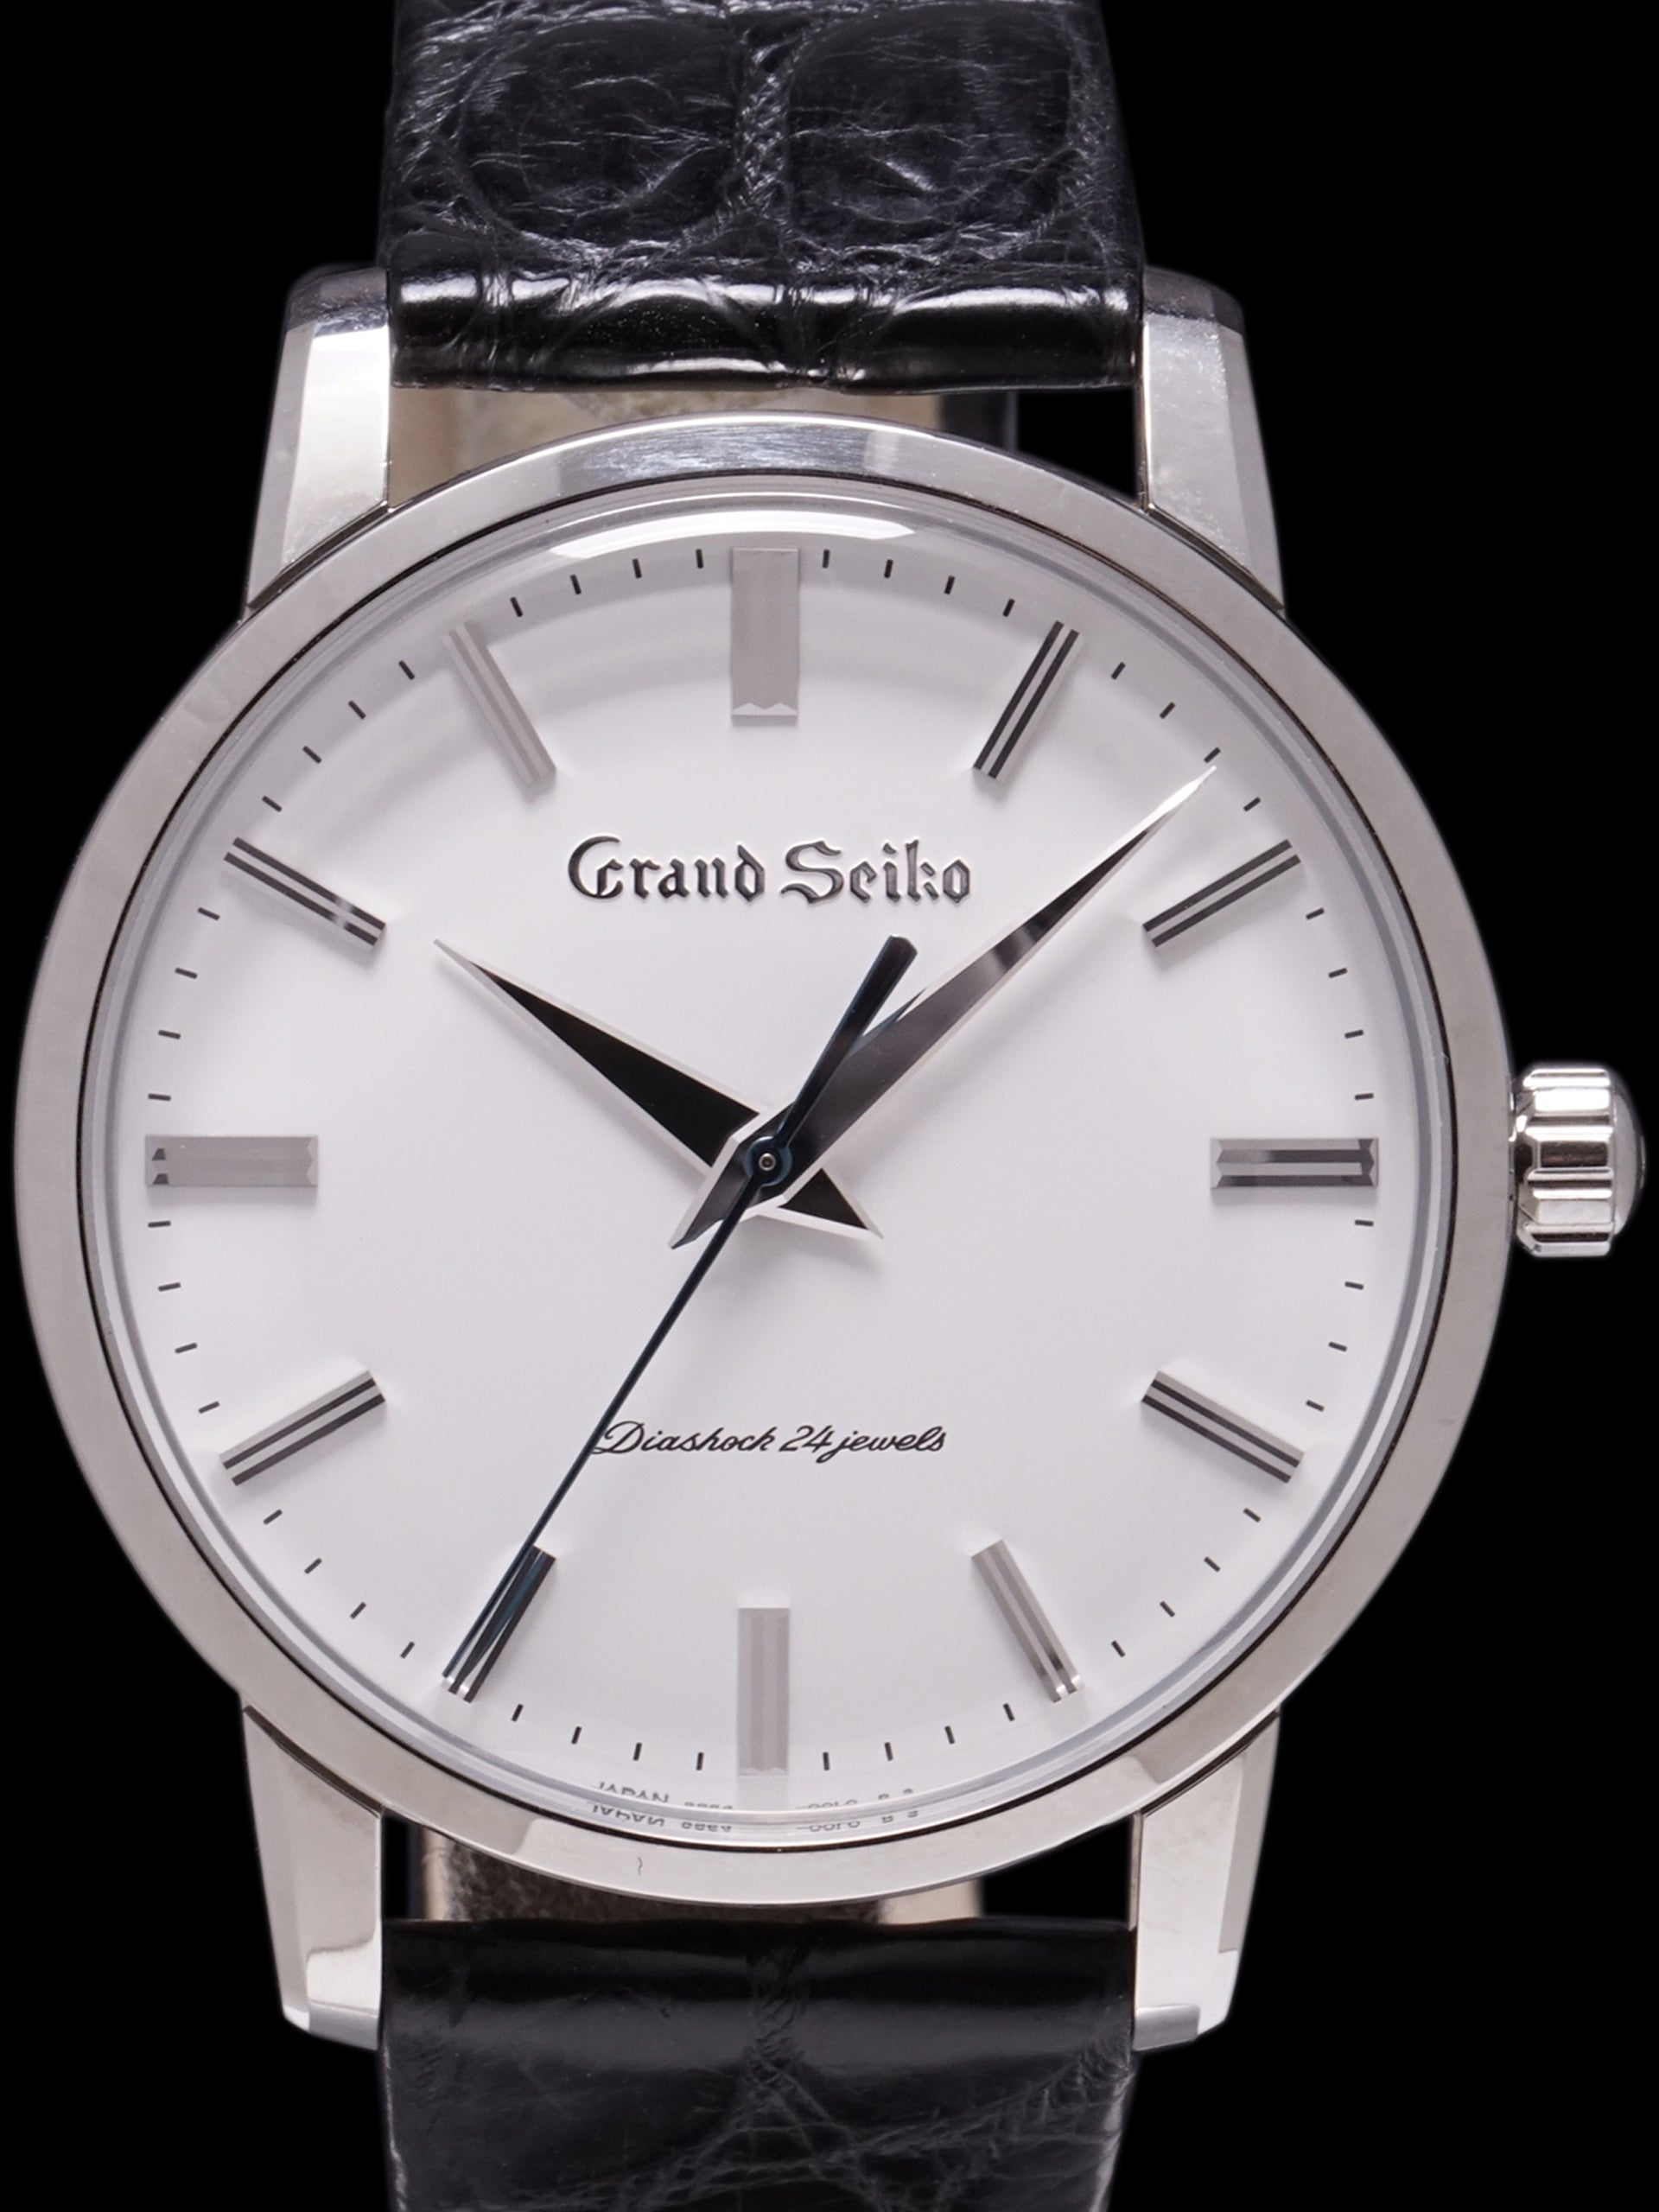 Limited Edition 2017 Grand Seiko (Ref. SBGW253) W/ Box & Papers